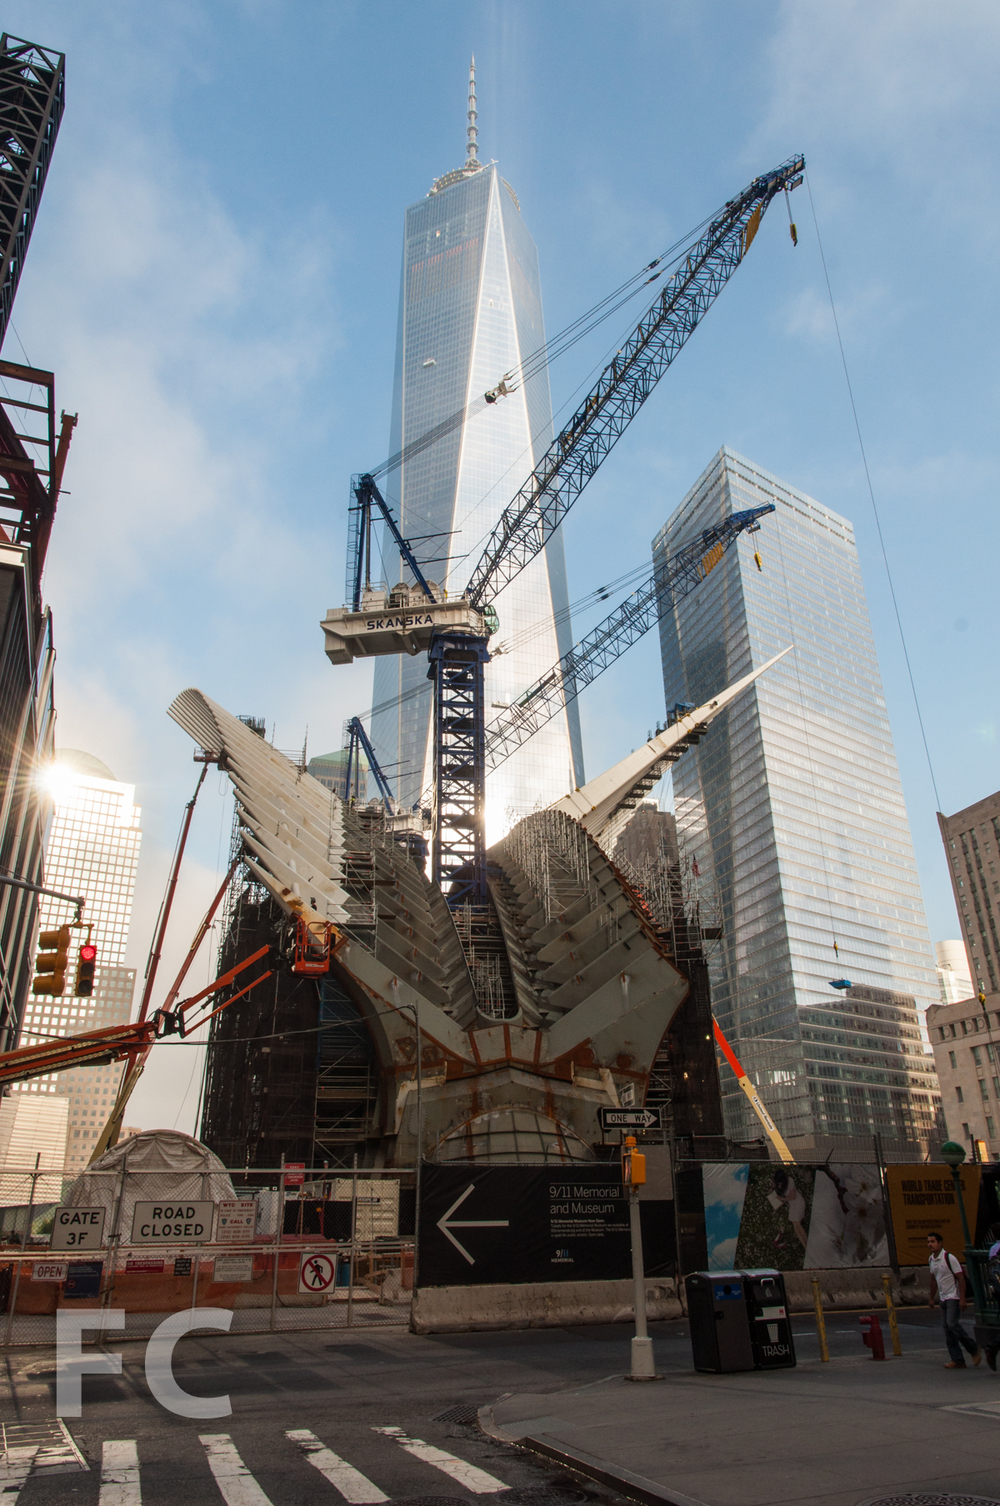 1 WTC, 7 WTC, and the WTC Transit Hub from the corner of Dey Street and Church Street.